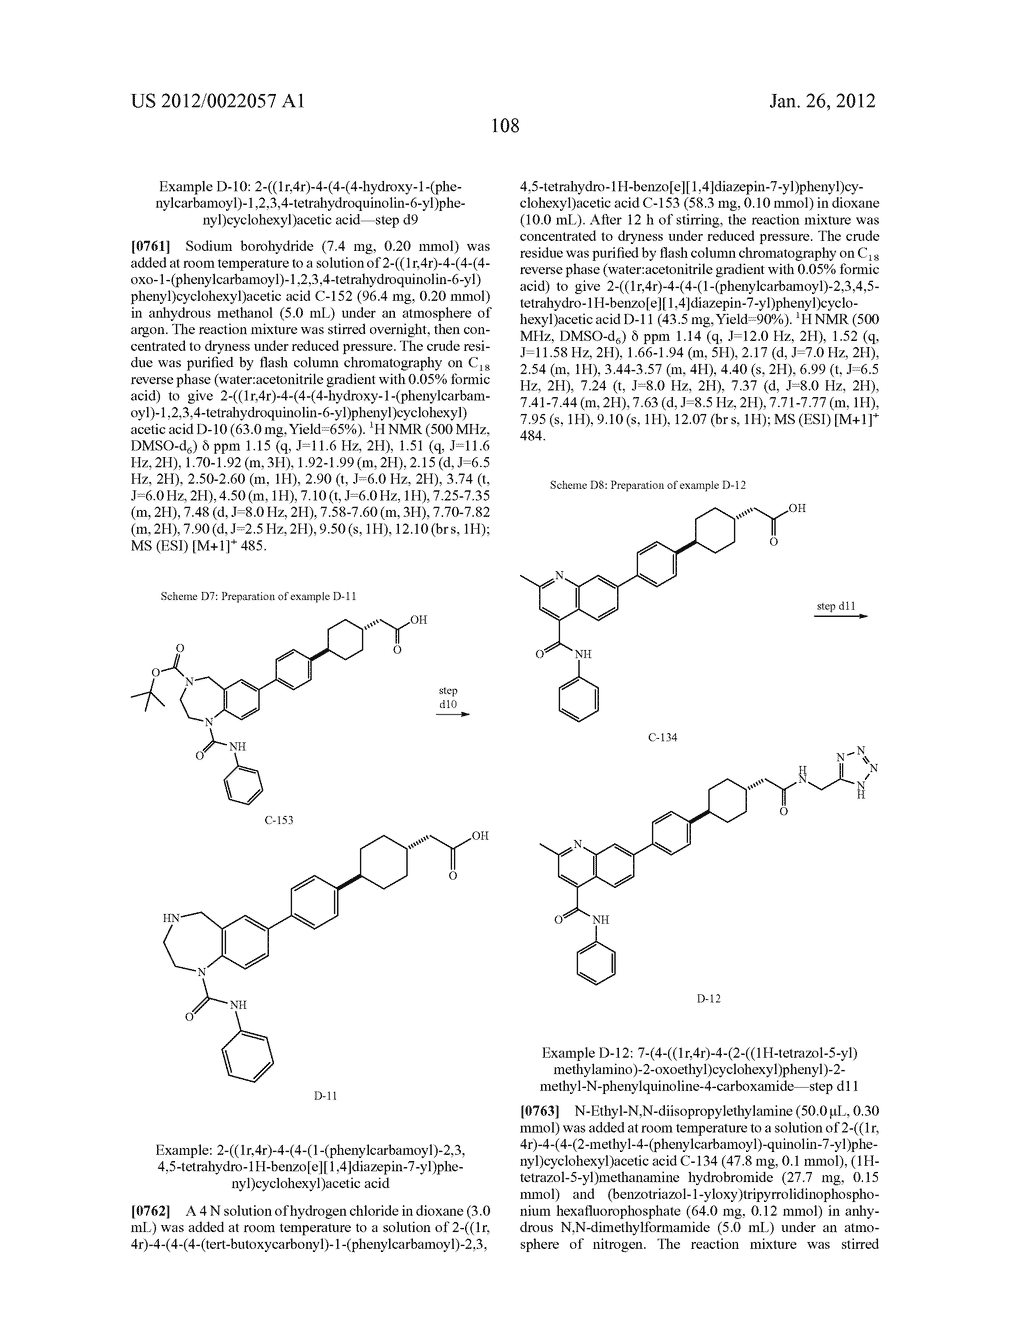 BICYCLIC COMPOUNDS AS INHIBITORS OF DIACYGLYCEROL ACYLTRANSFERASE - diagram, schematic, and image 109